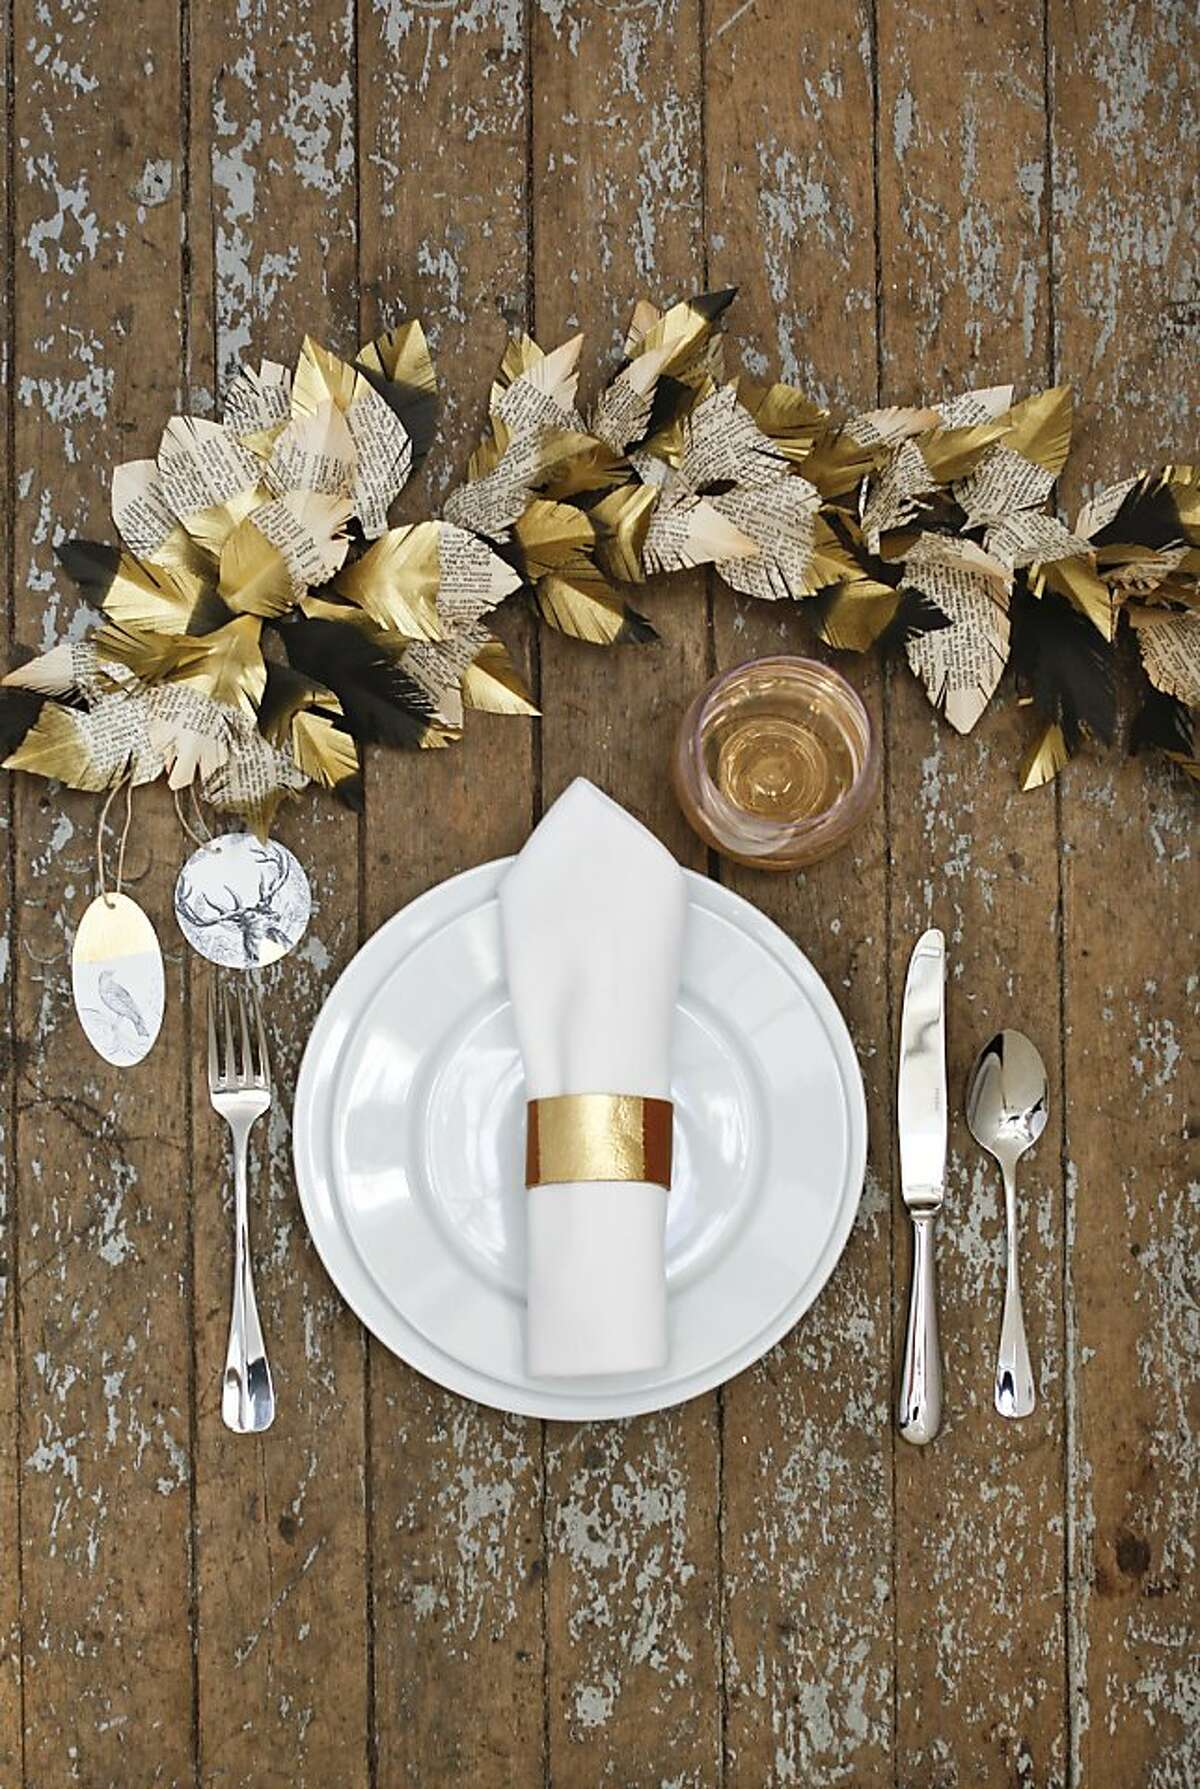 San Francisco Creativebug offers online videos on a variety of crafts. Instructor Courtney Cerruti shares three projects to add give your holiday home a DIY touch. To start, click through the photos for step-by-step instructions to create this elegant leaf and feather garland and leather napkin ring.